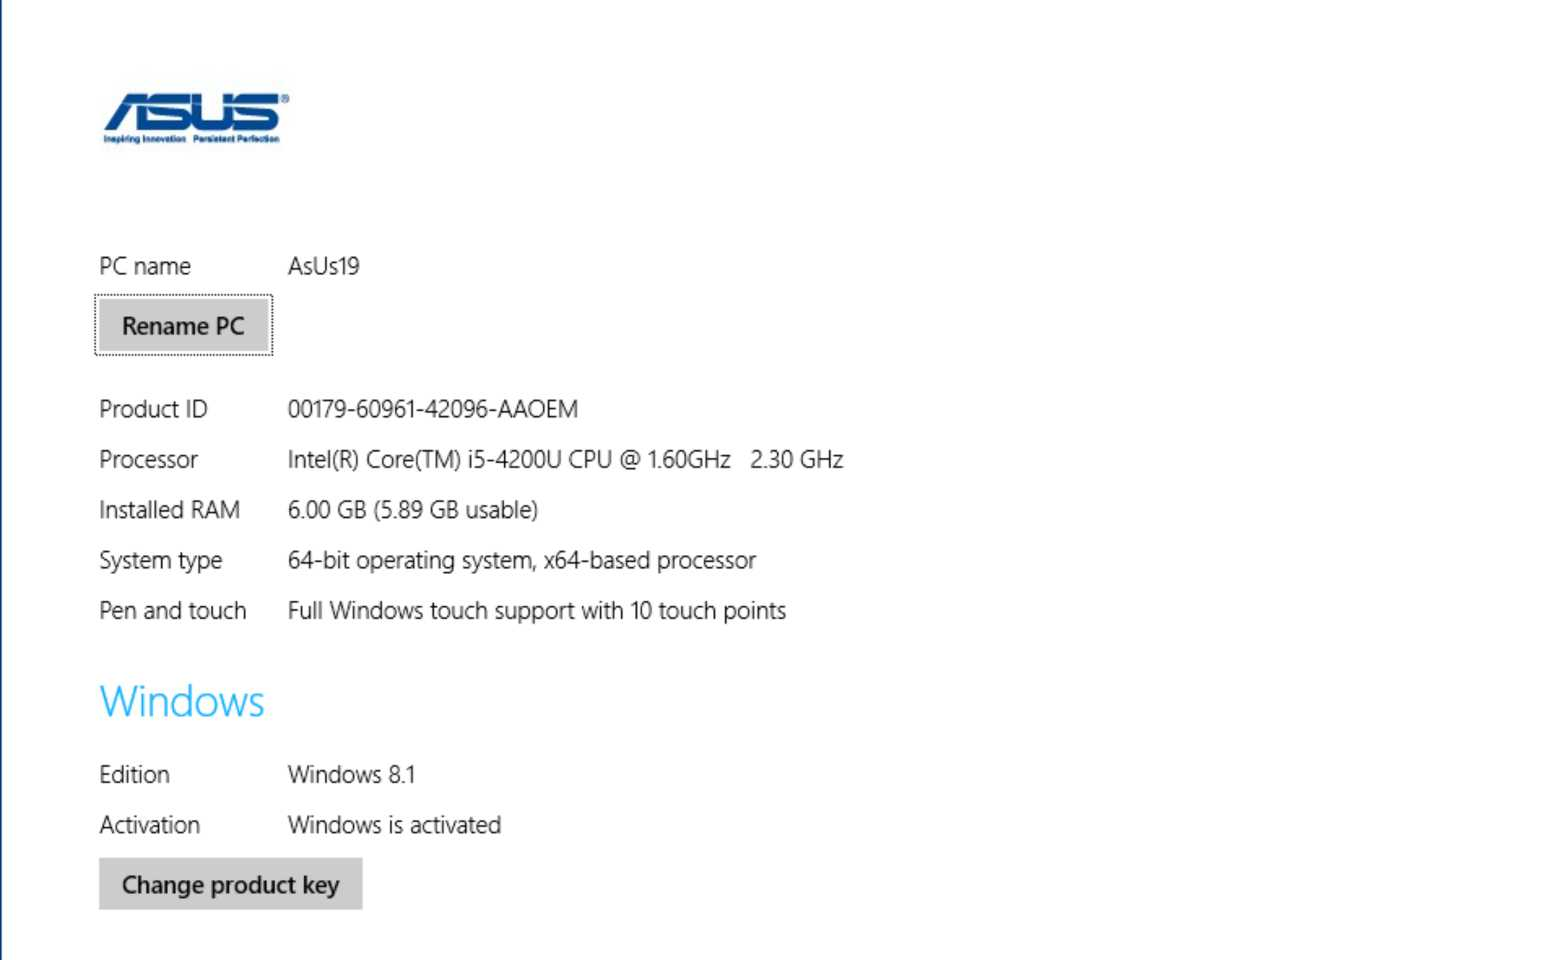 My Asus PC system configuration